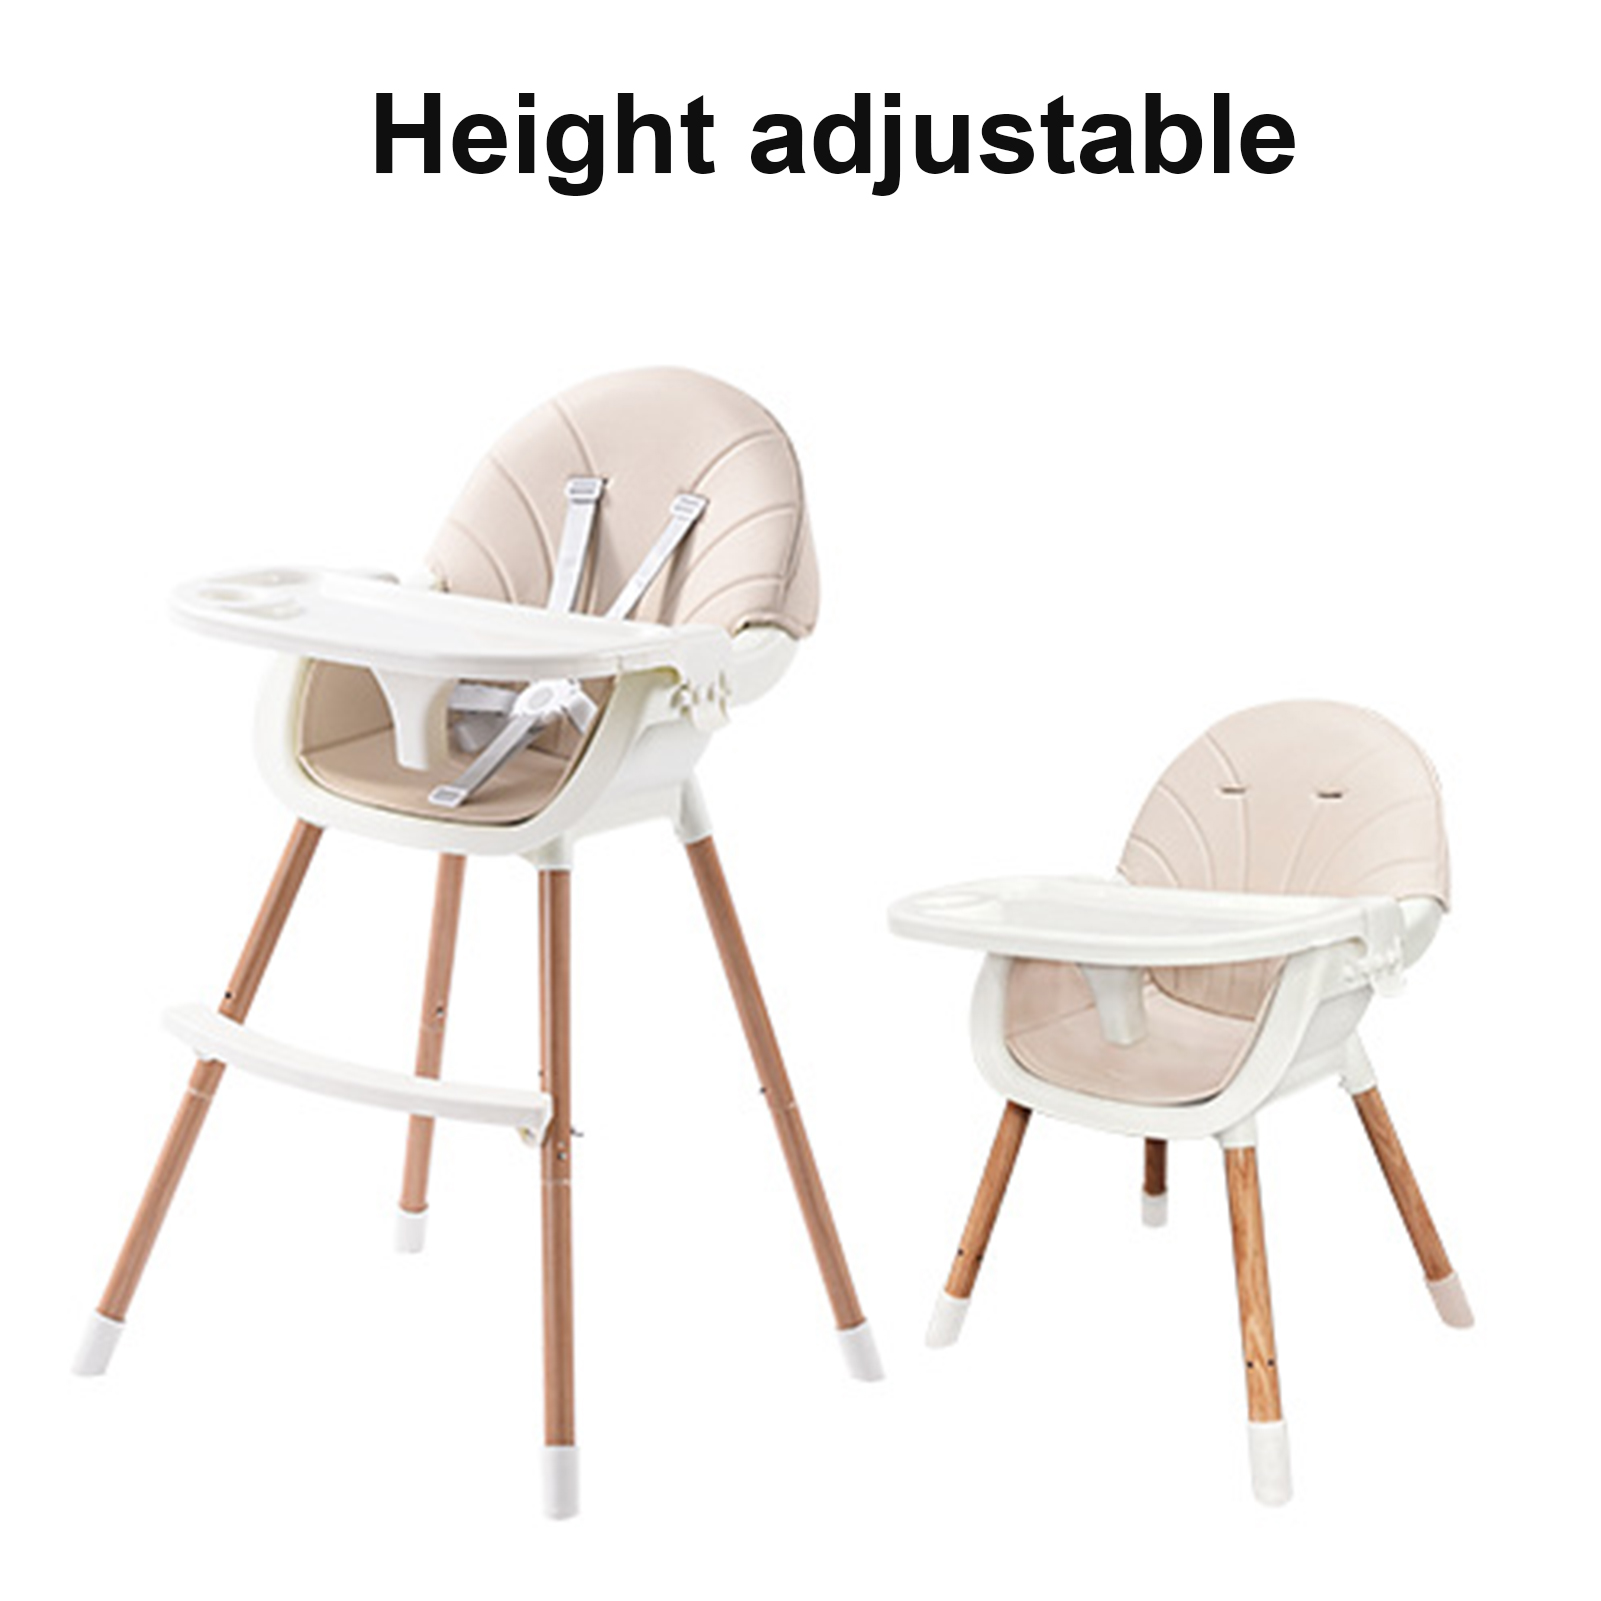 Baby Dining Chair Children Dining Chair Multifunctional Foldable Portable Large Baby Chair Eating Dining Table And Chair Seat